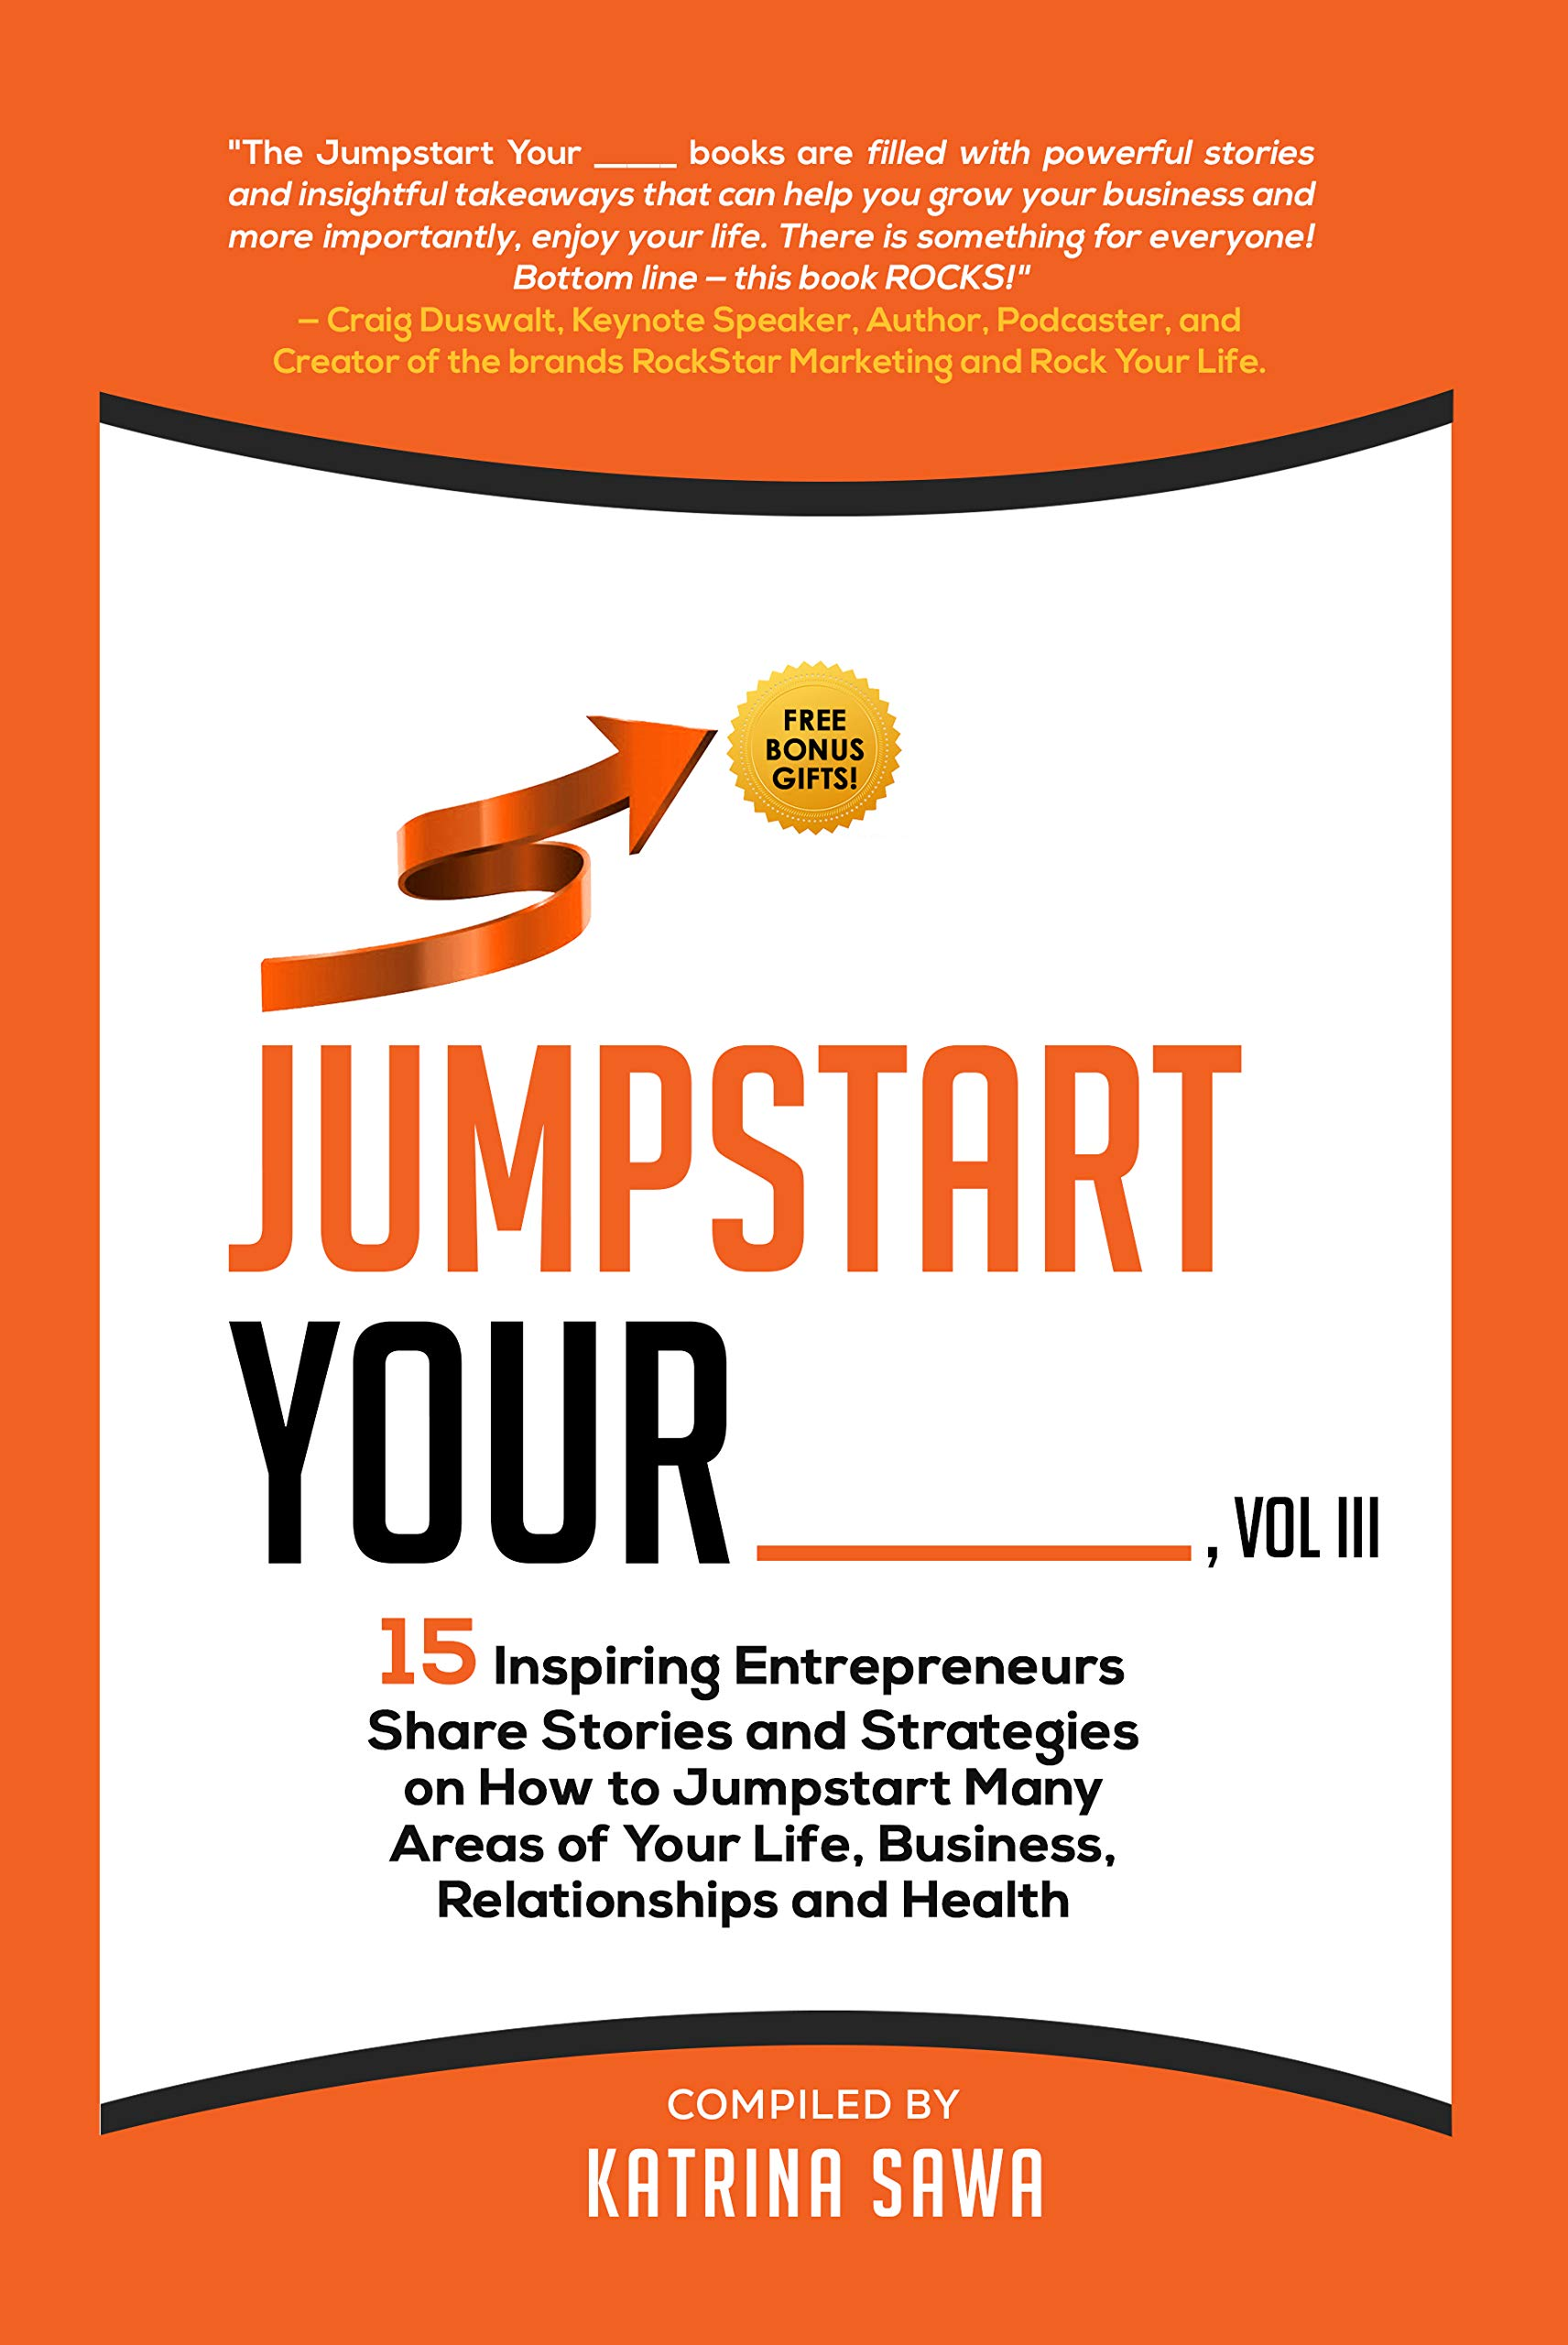 Jumpstart Your _____, Vol III: 15 Inspiring Entrepreneurs Share Stories and Strategies on How to Jumpstart Many Areas of Your Life, Business, Relationships, and Health